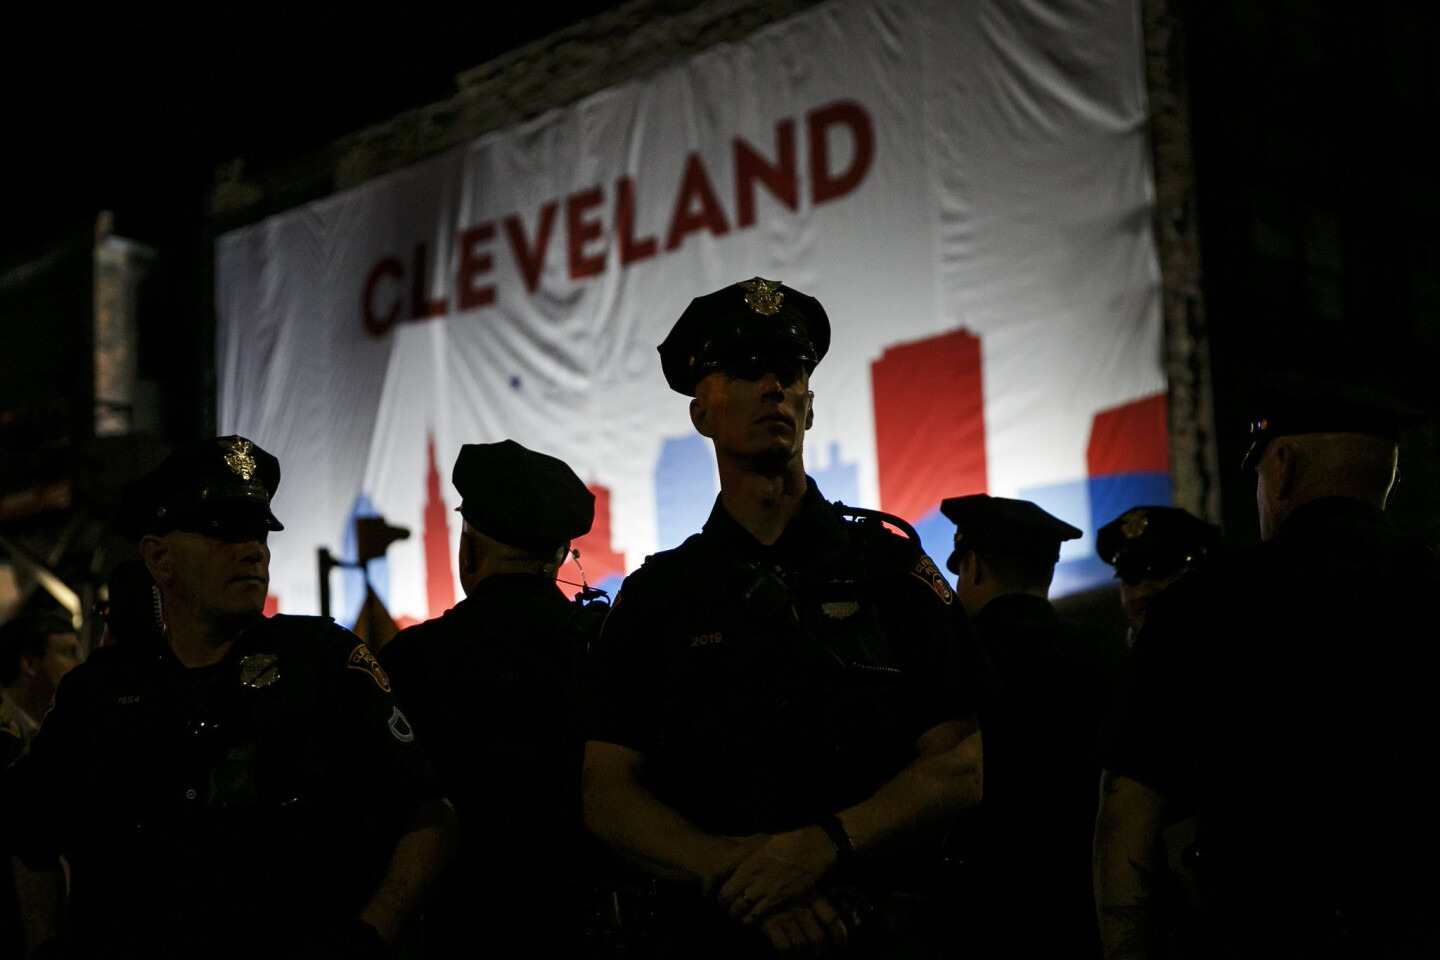 Cleveland Police Officers stand guard at the entrance to the Quick Loans Arena for the 2016 Republican National Convention in Cleveland.